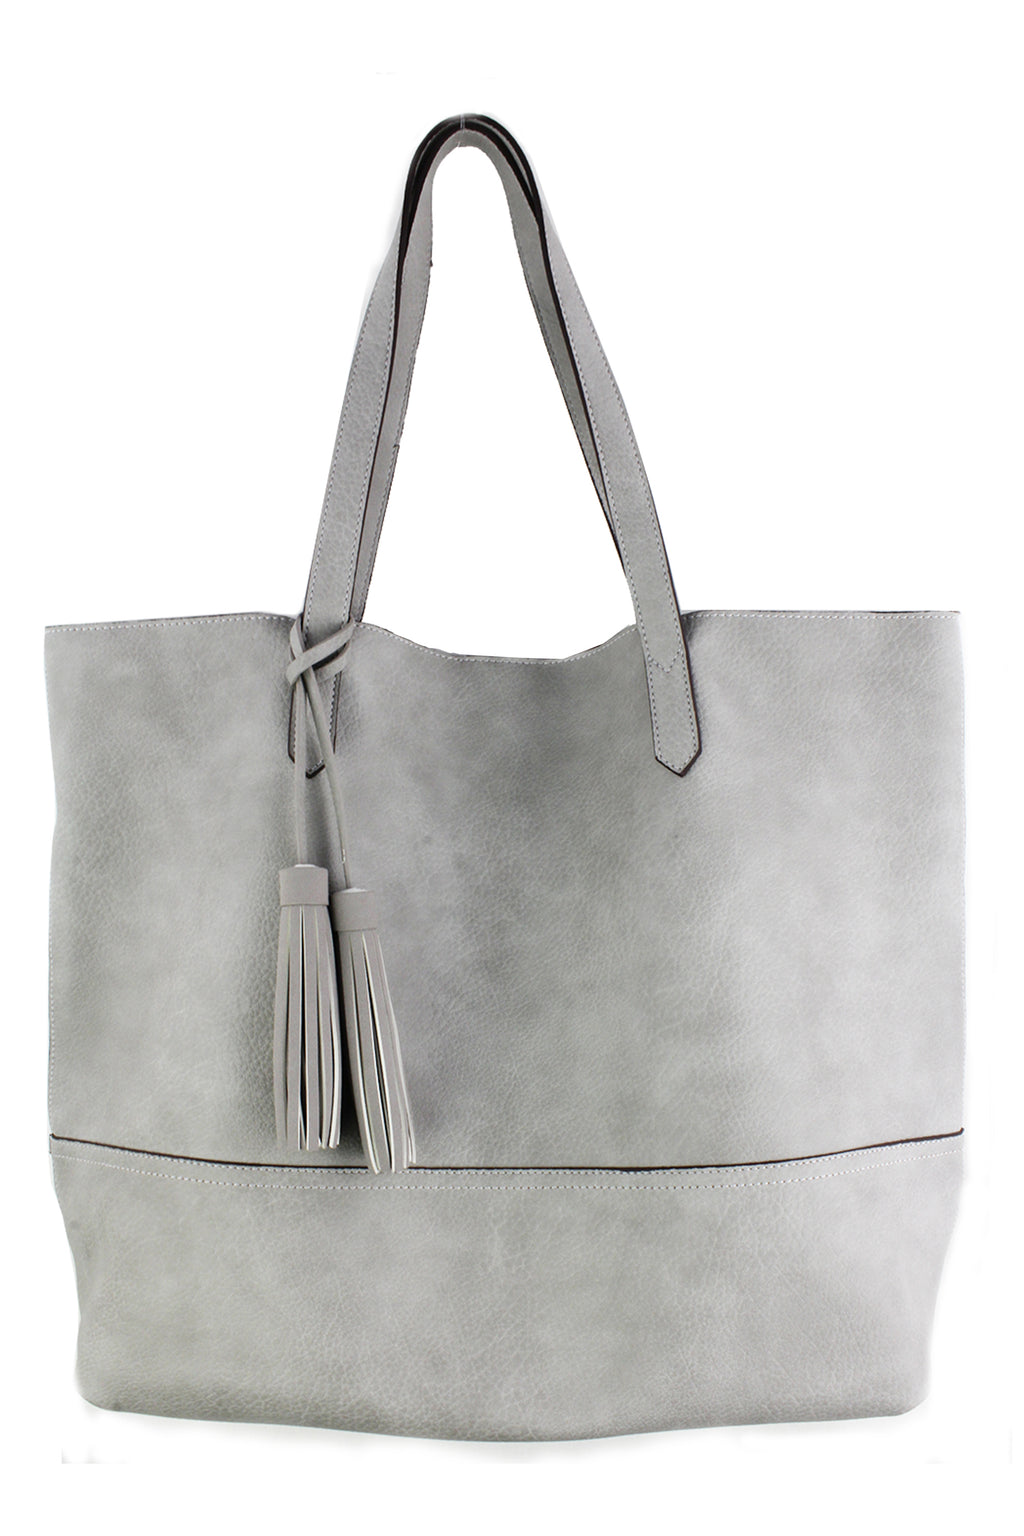 Street Level Babette Tote - Light Grey